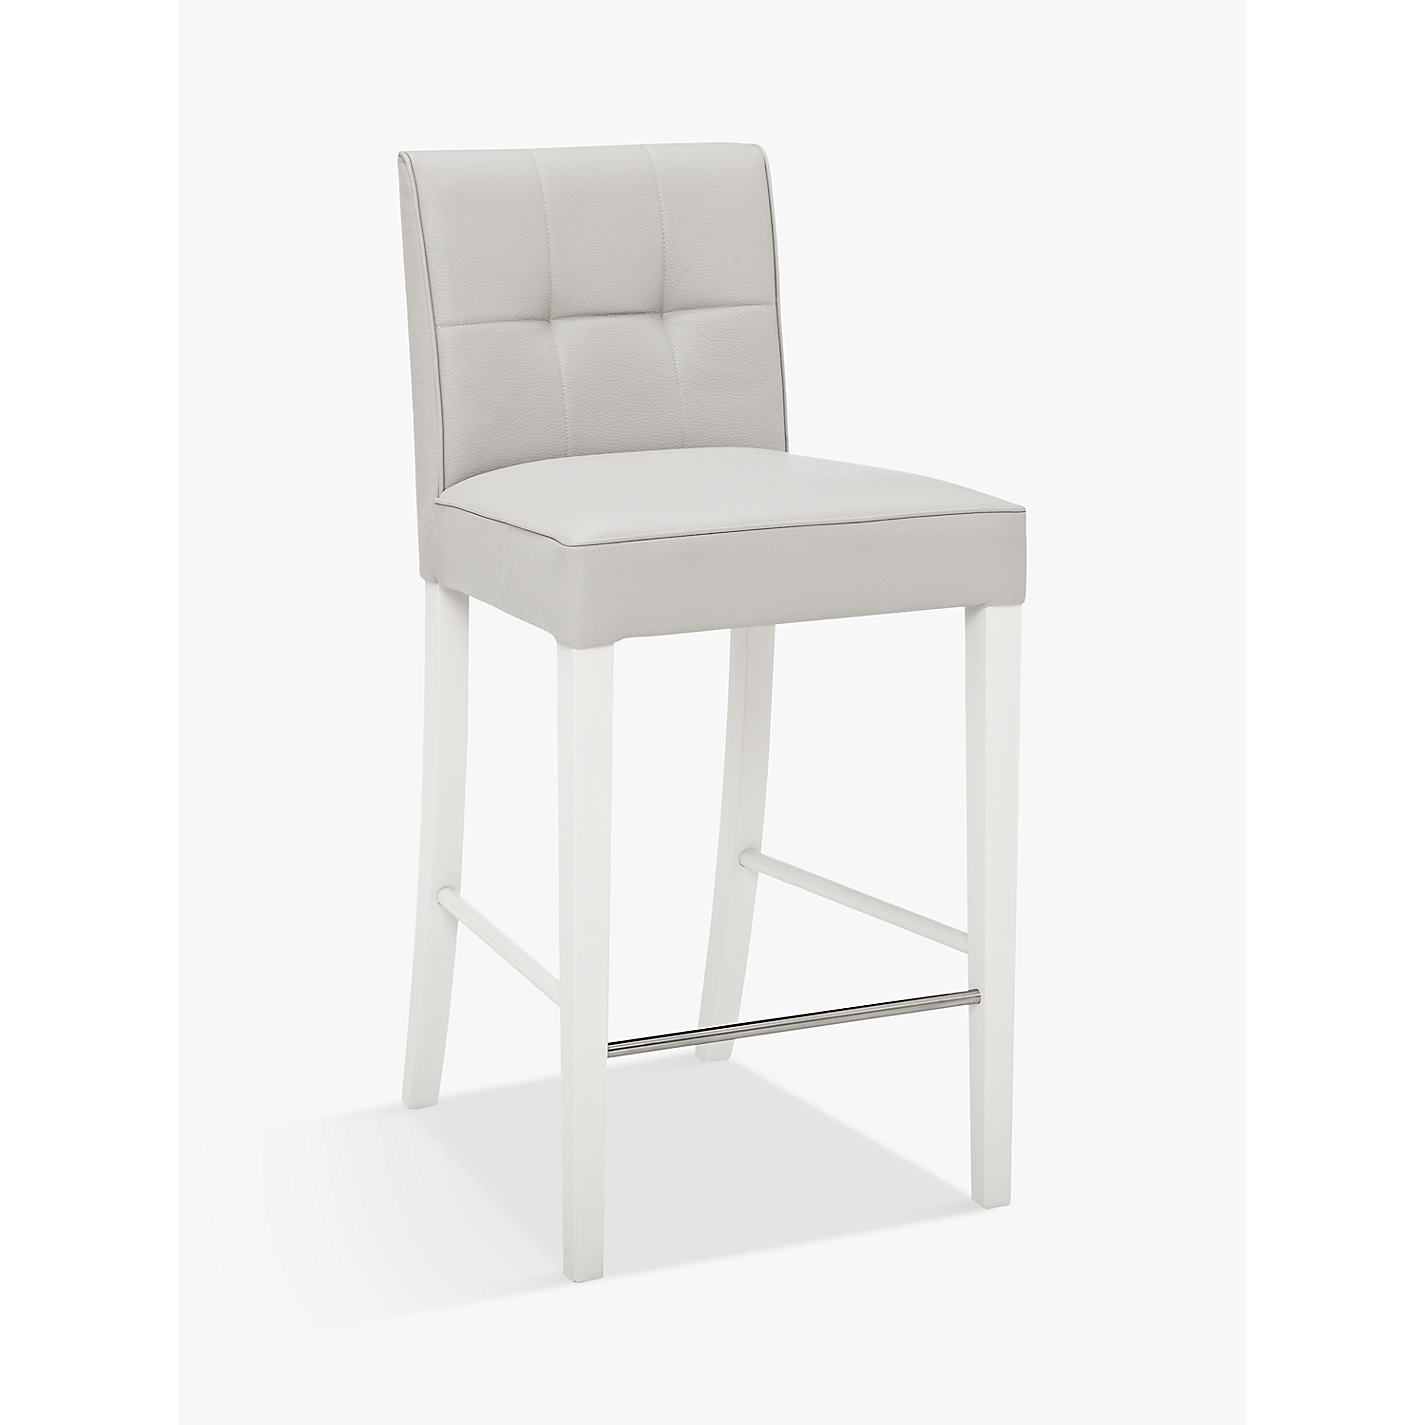 Buy John Lewis Simone Faux Leather Bar Chair Grey Online at johnlewis.com ...  sc 1 st  John Lewis : leather bar stools uk - islam-shia.org